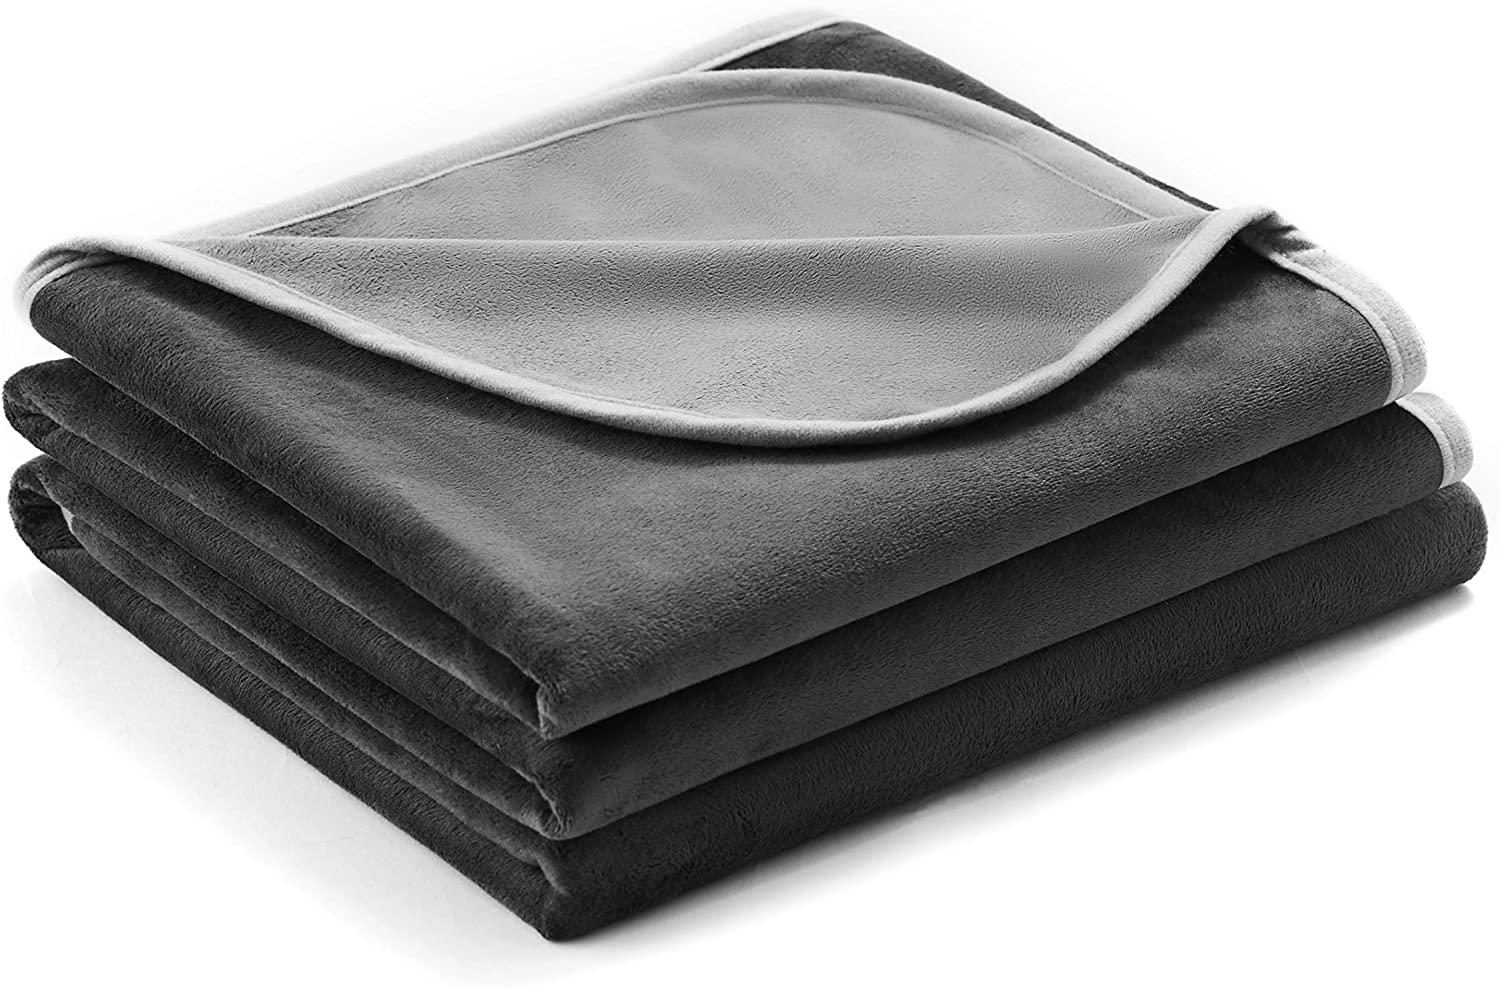 100% Waterproof Blanket, Furniture Cover and Protection, Reversible Double Layer Silky Microplush, Designed for Indoor and Outdoor, Made for Human and Pets, Grey, 80 x 60In